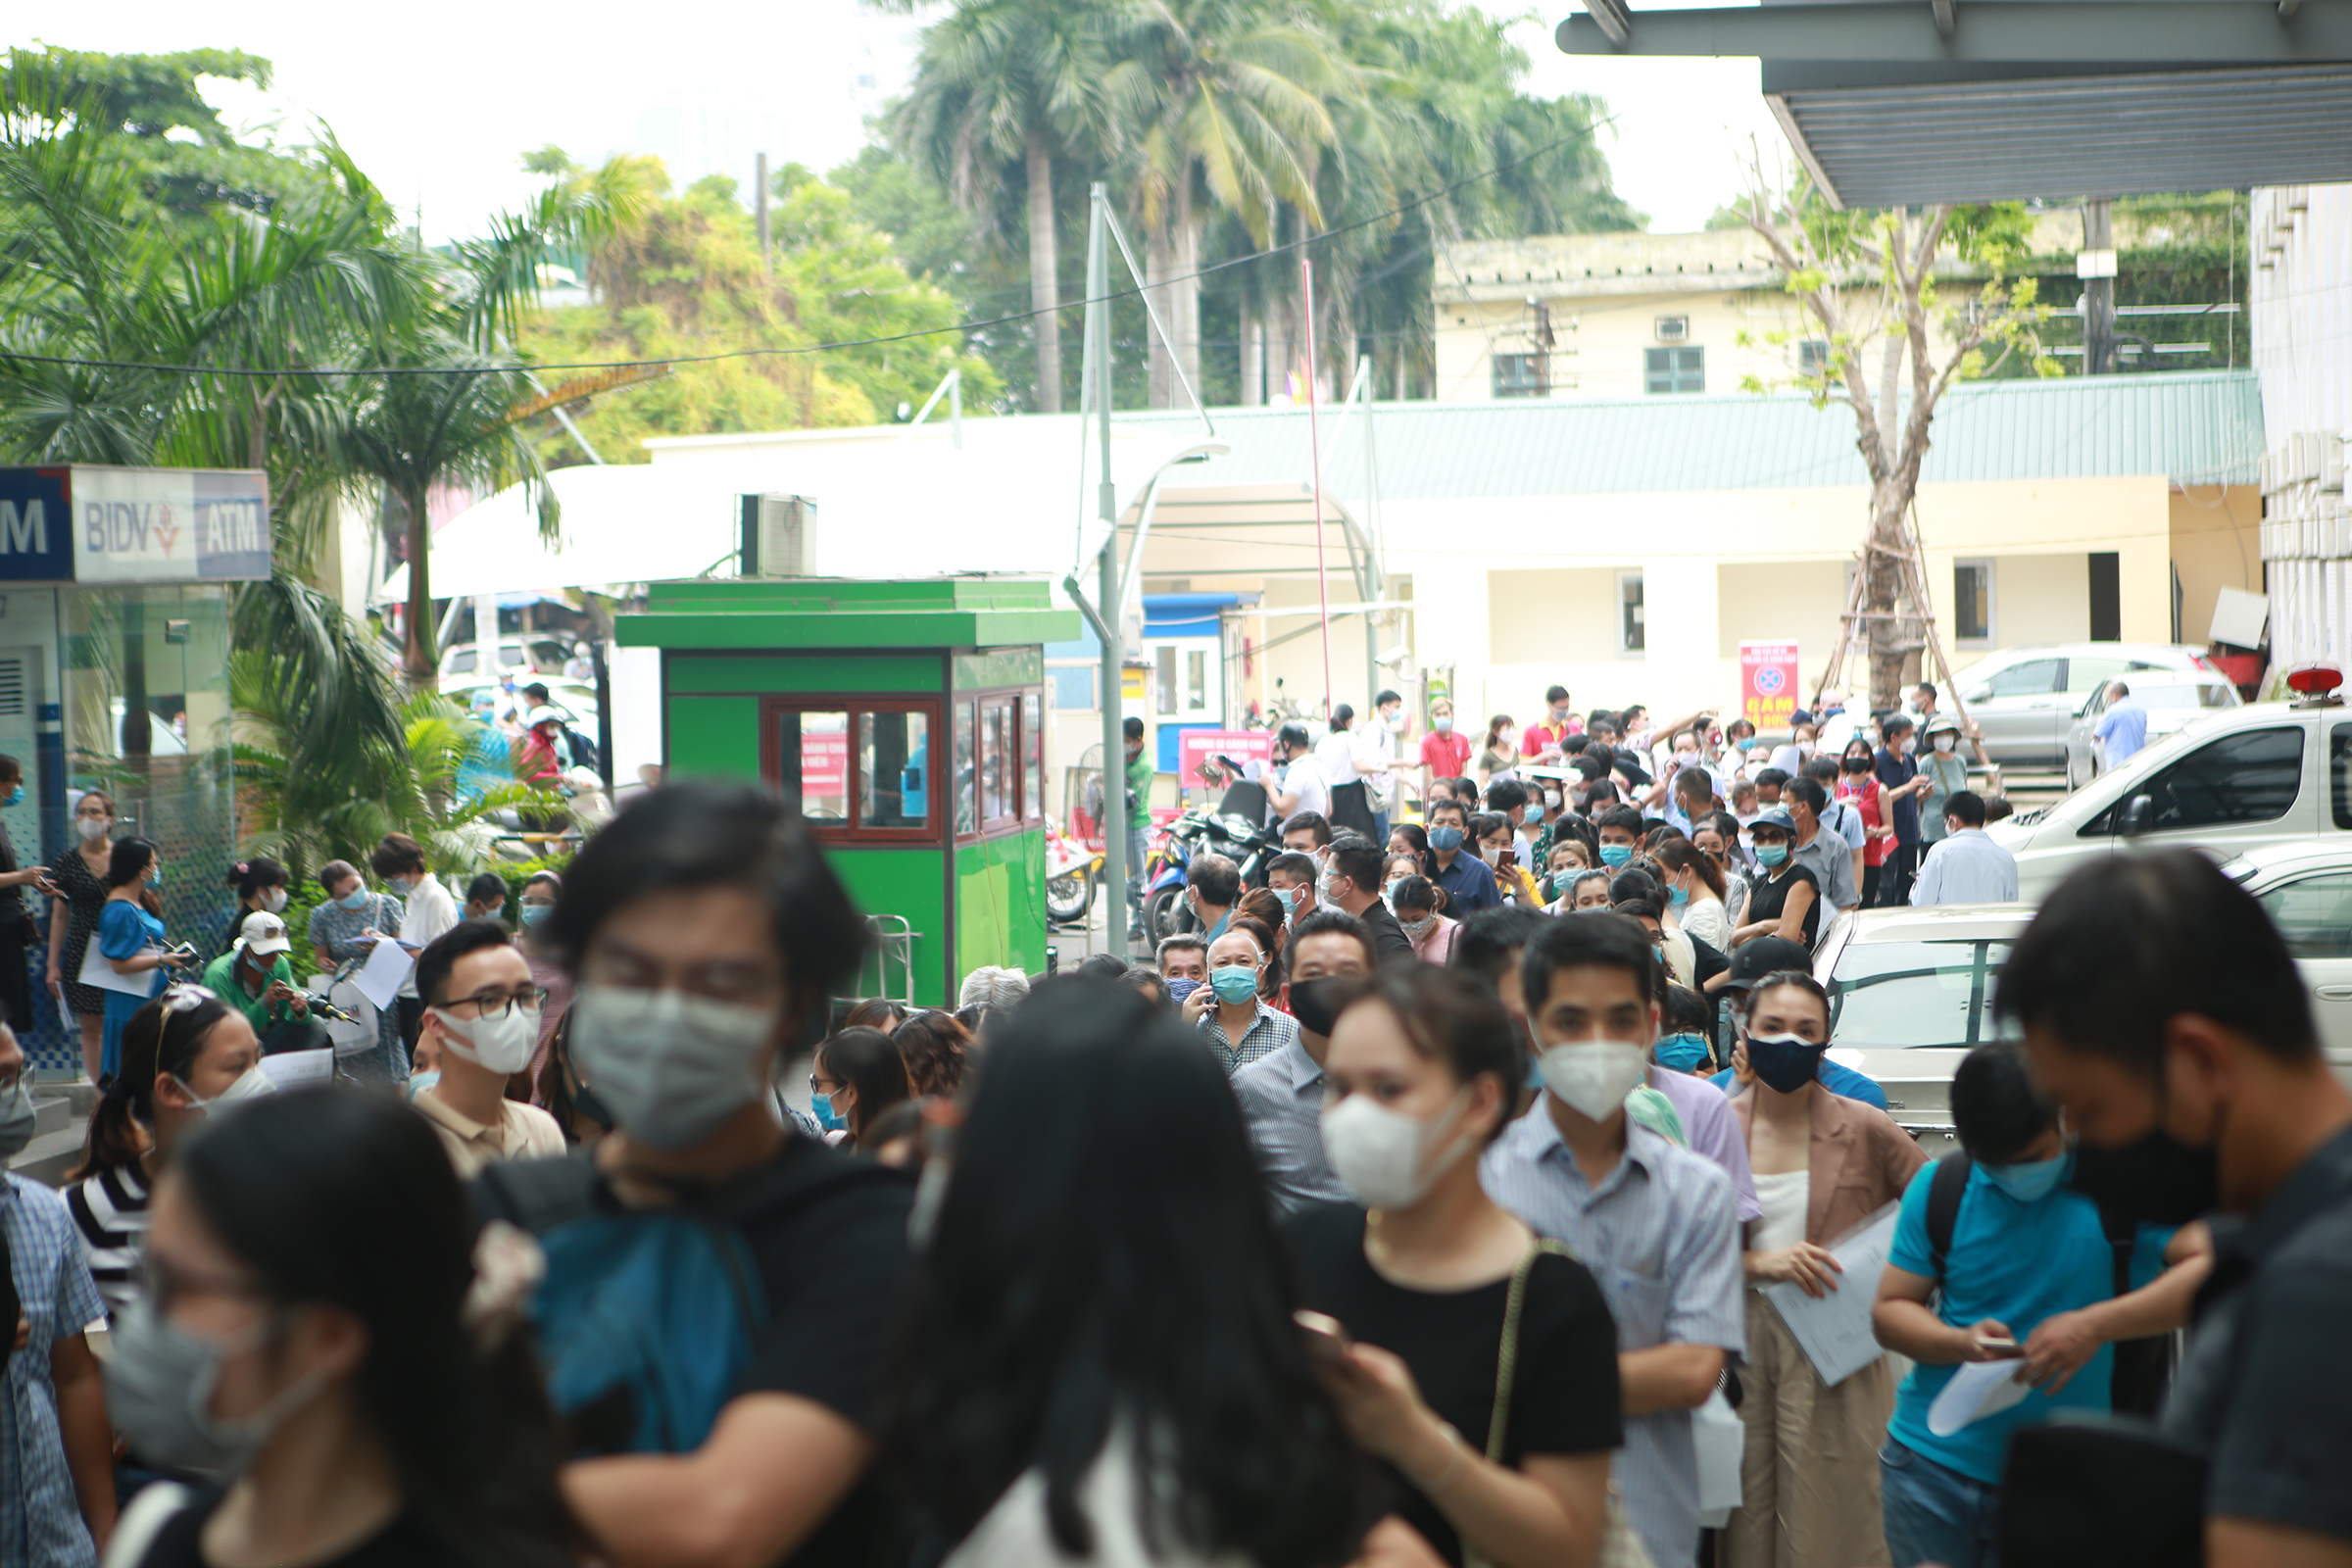 Hanoi hospital suspends Covid vaccination after overcrowding